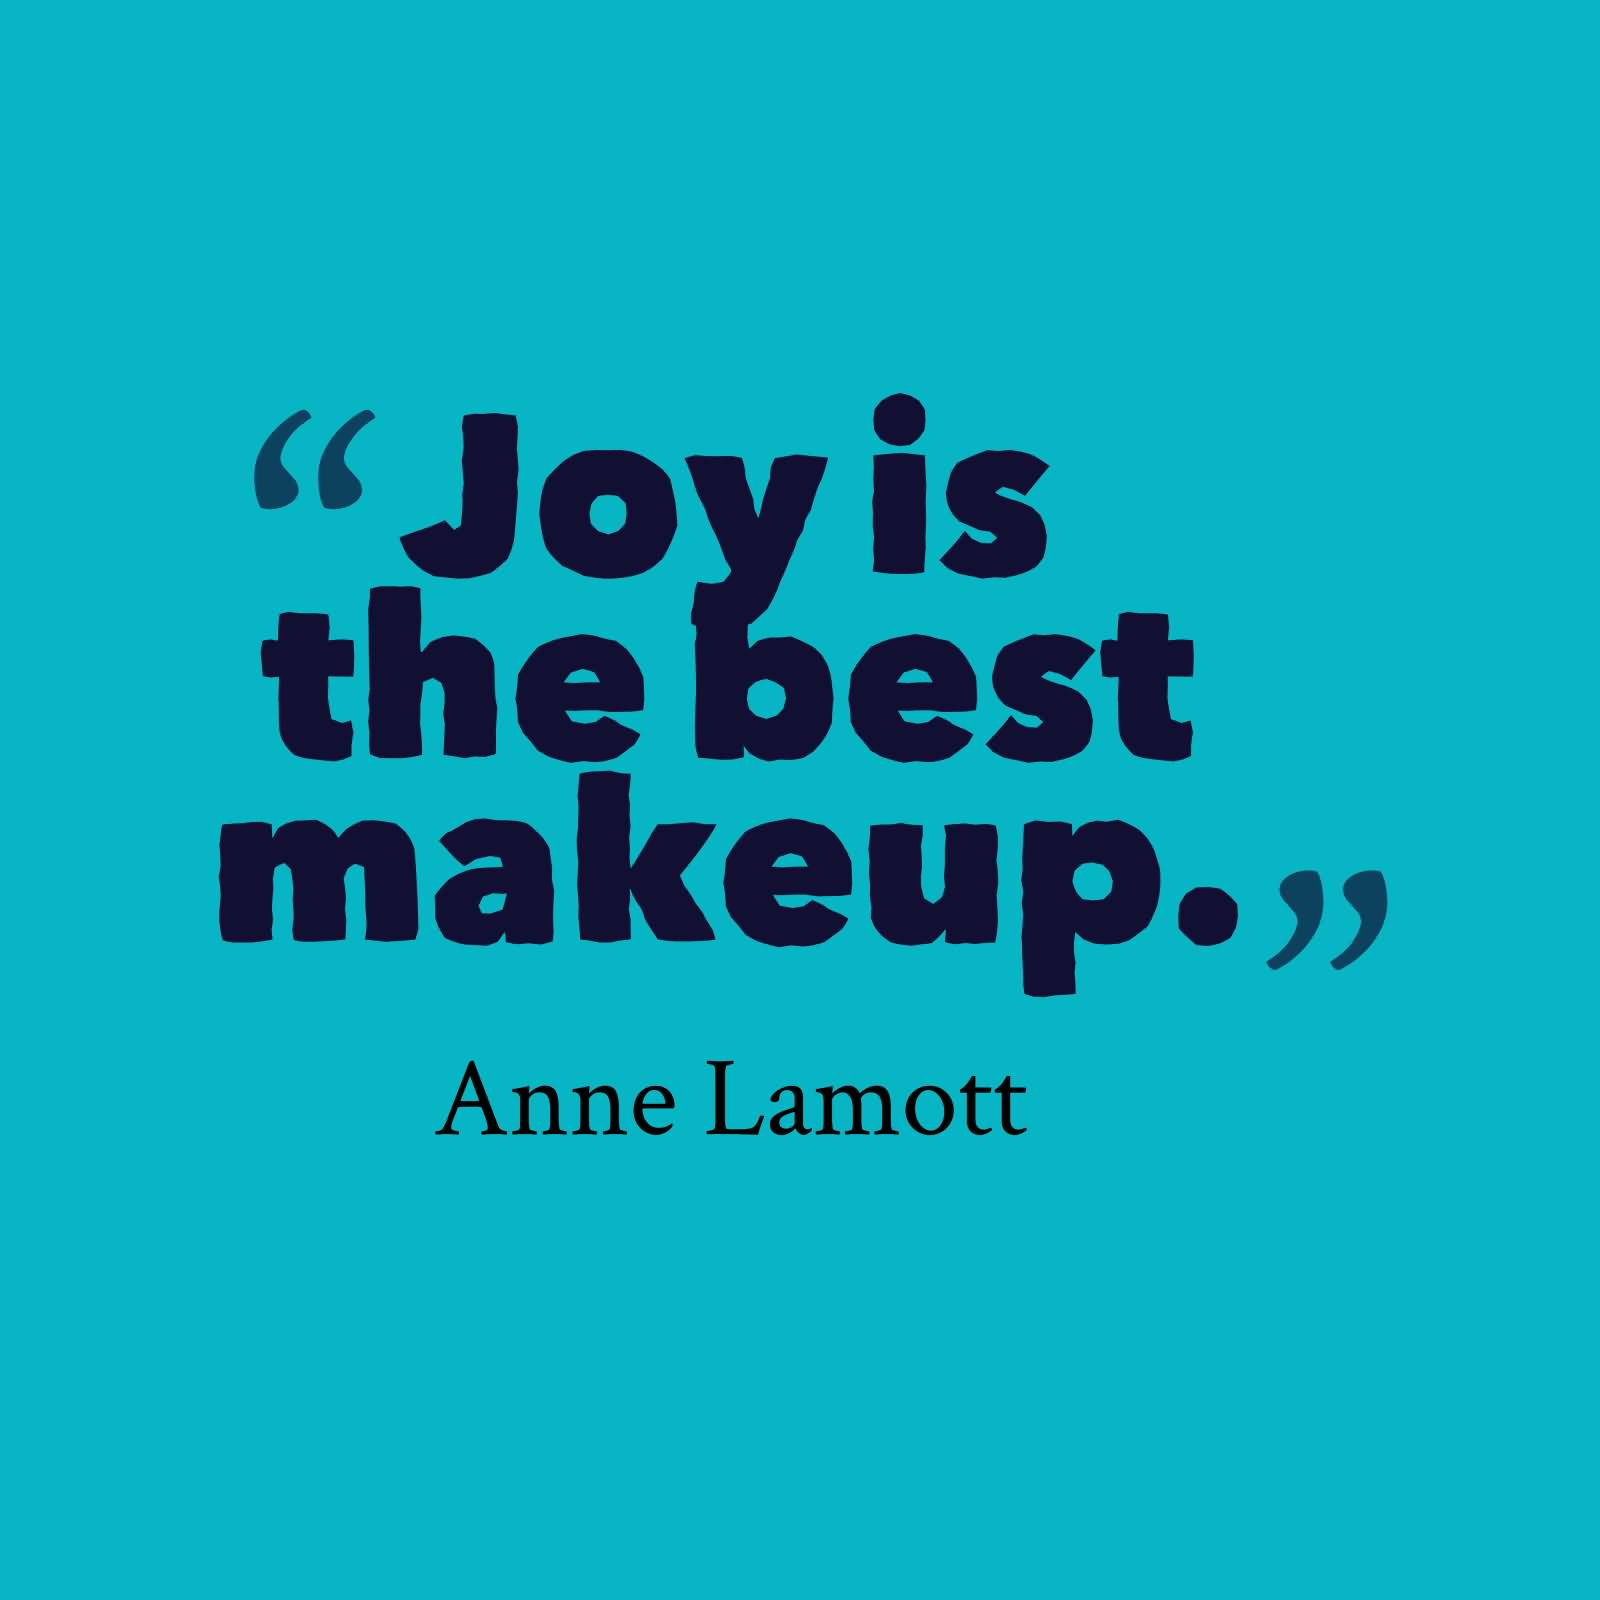 Amazing Quotes And Sayings 63 Most Amazing Joy Quotes And Sayings